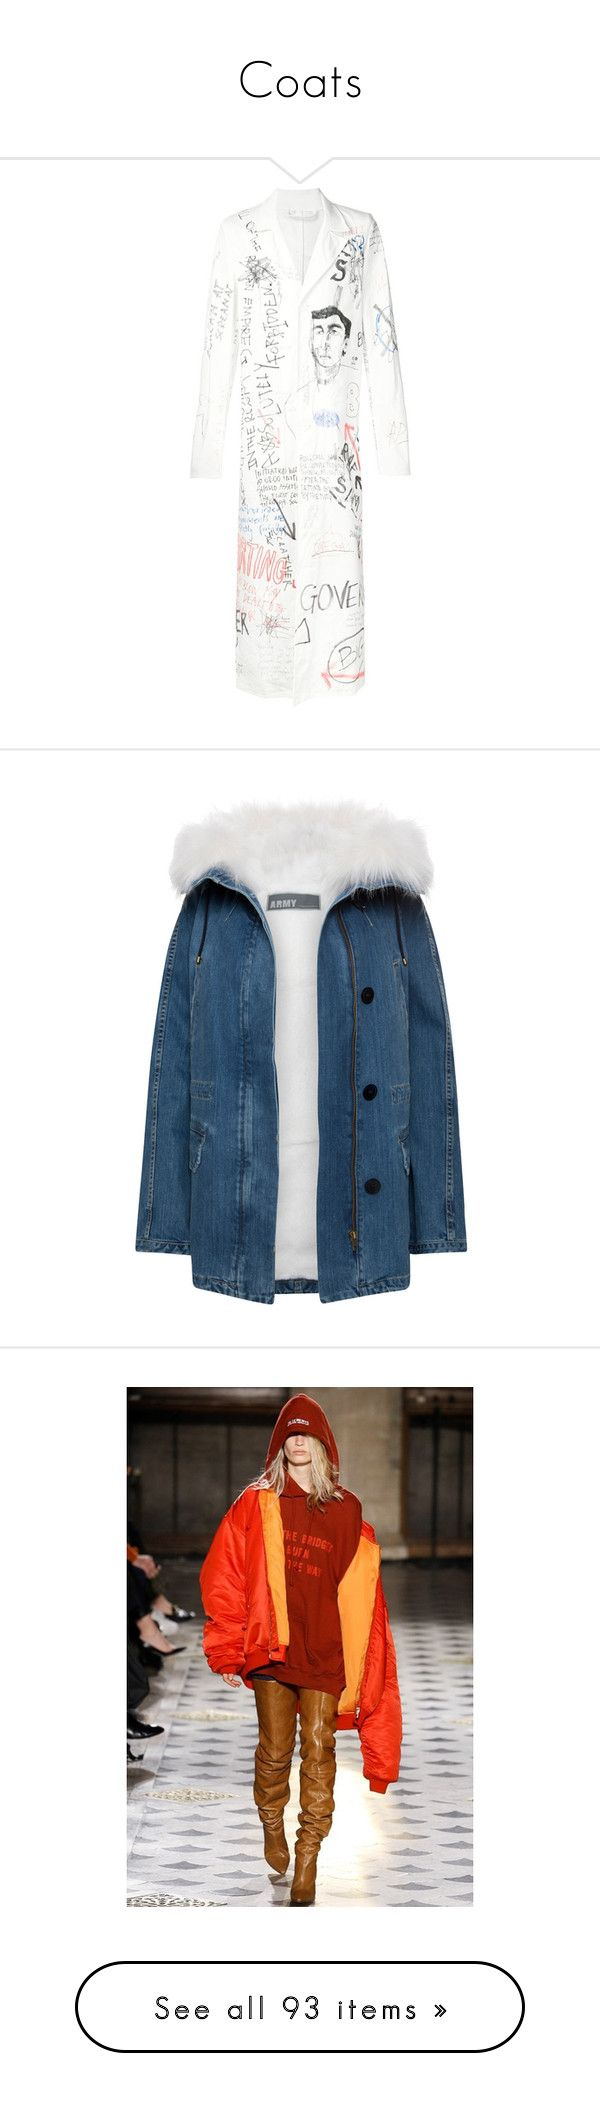 """""""Coats"""" by mollface ❤ liked on Polyvore featuring outerwear, coats, jackets, casaco, blue parka, vintage parka, blue coat, parka coats, denim parka and jewelry"""